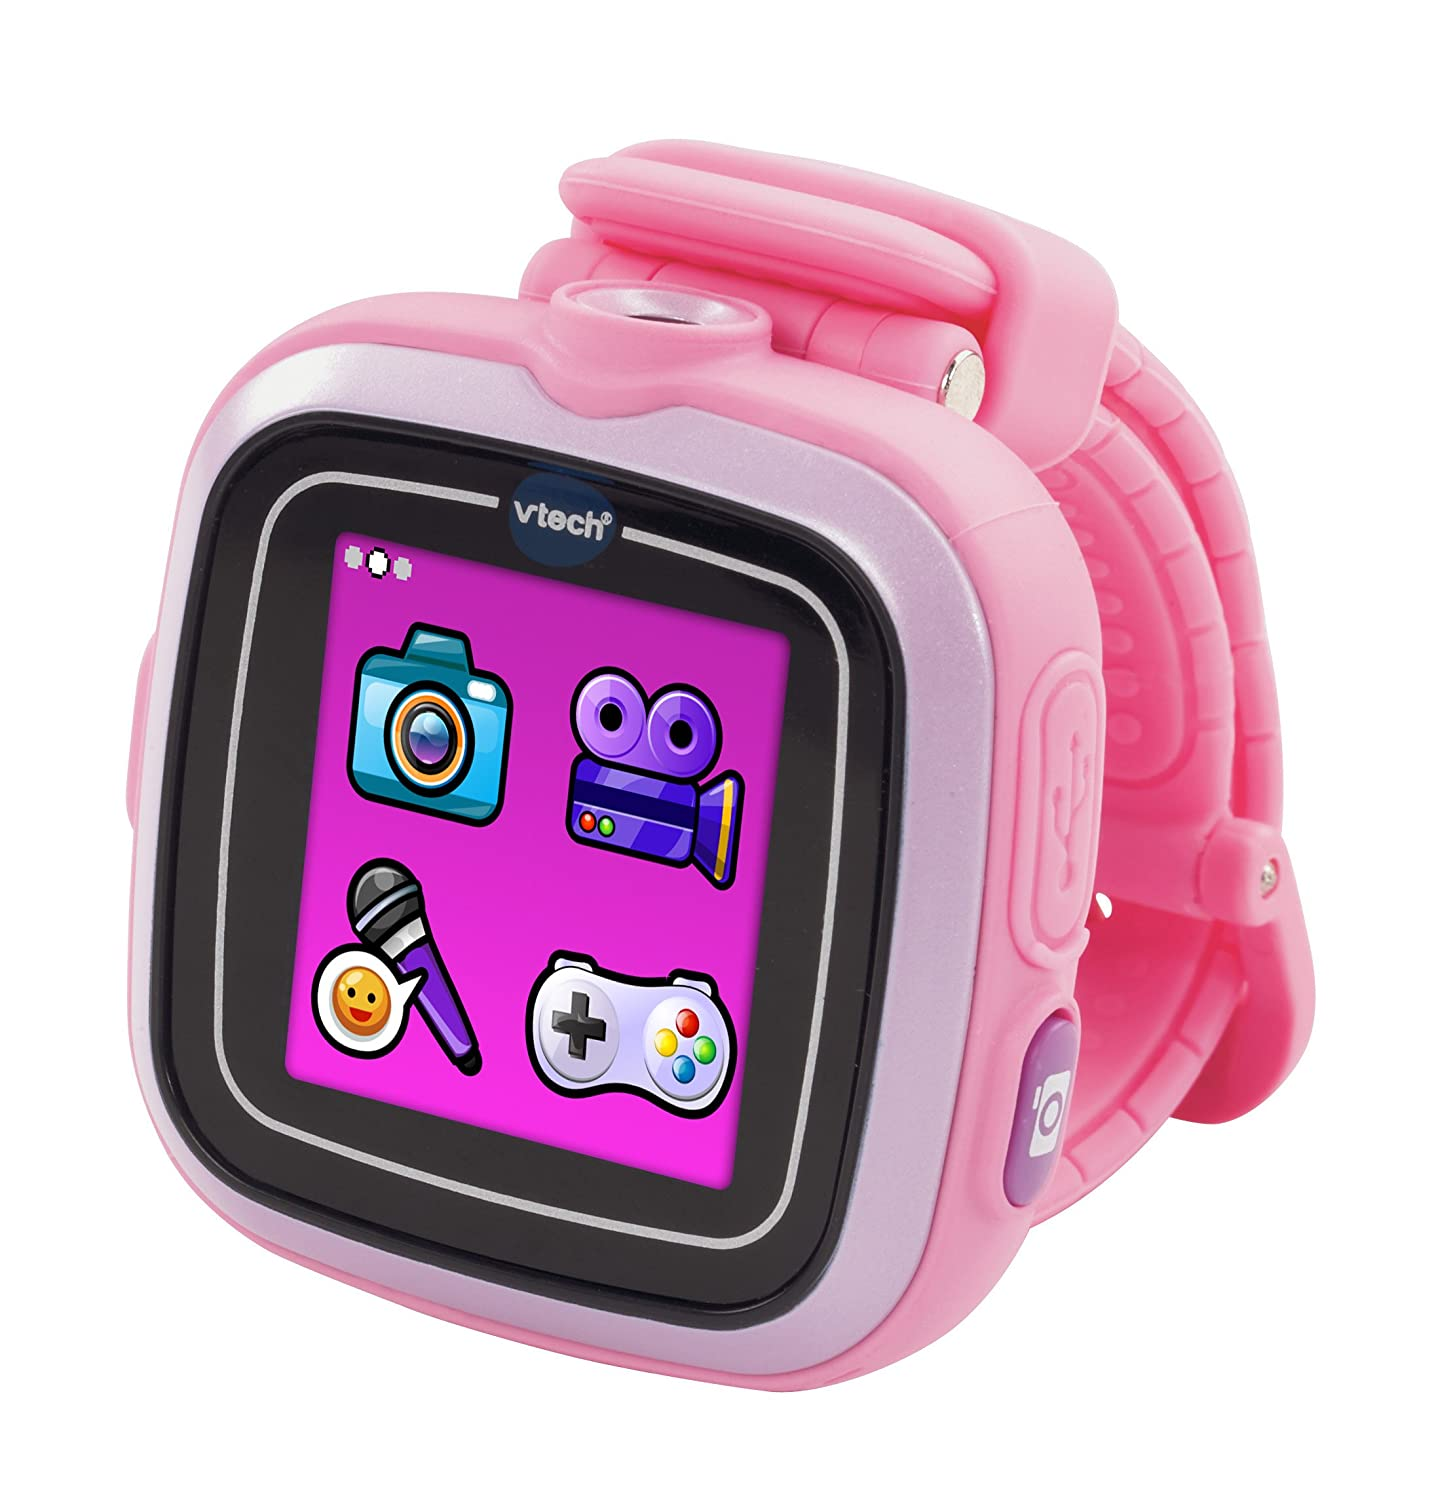 Amazon VTech Kidizoom Smartwatch Pink Discontinued by